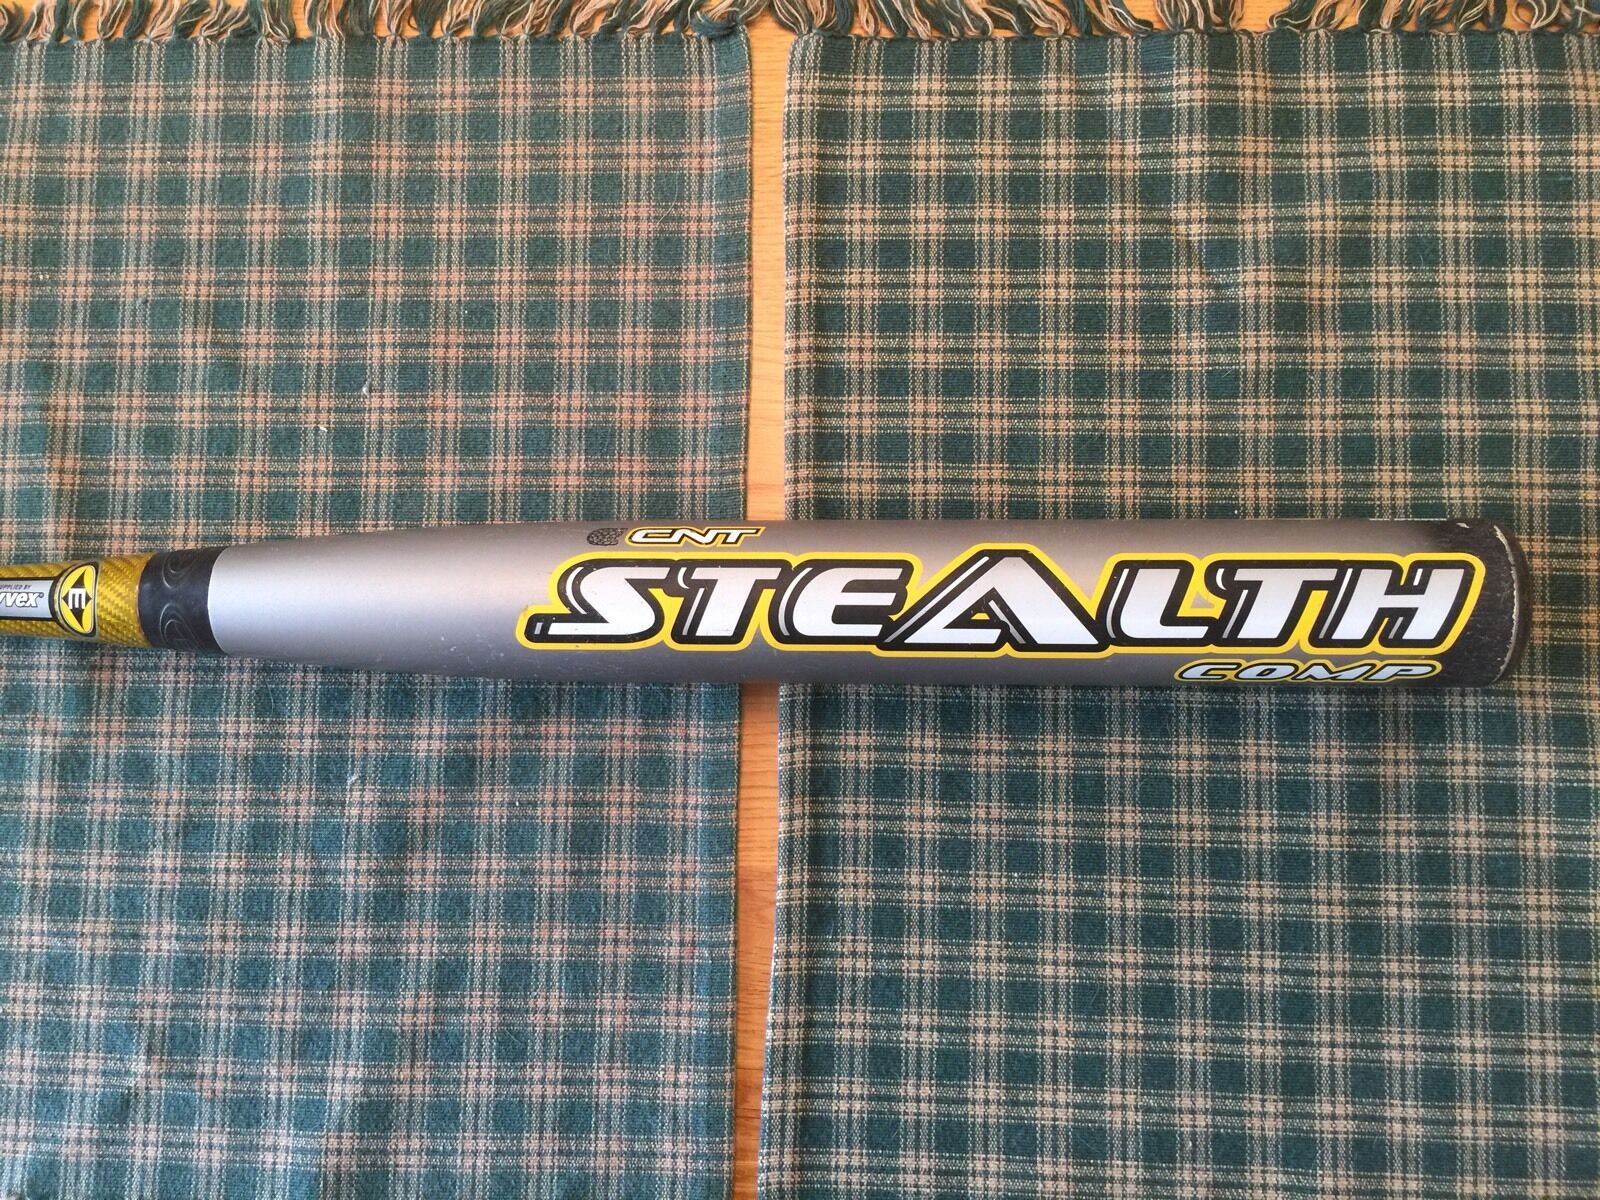 Raro utilizado Easton Stealth Comp Cnt scn4b 33 23 (-10) Fastpitch Softball caliente